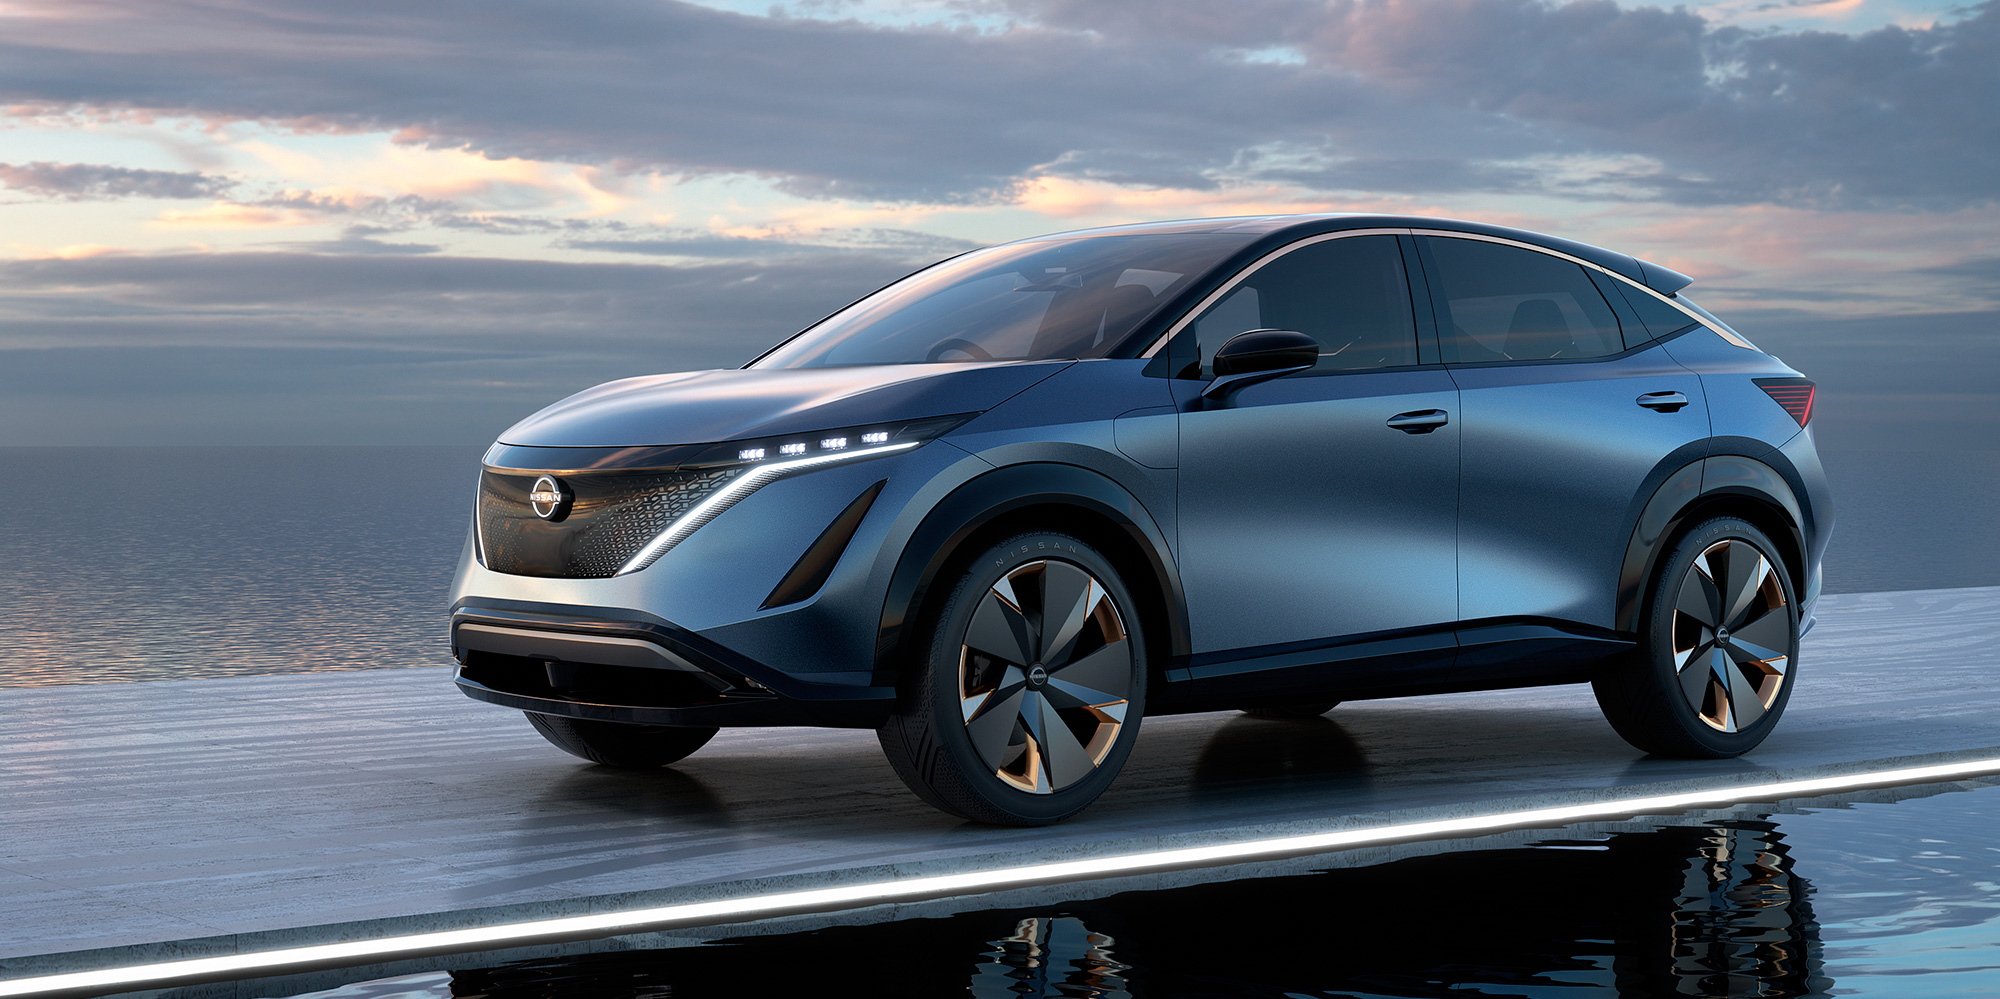 Nissan To Premiere Electric Ariya Crossover On July 15 Taking On Tesla Model Y Electrek